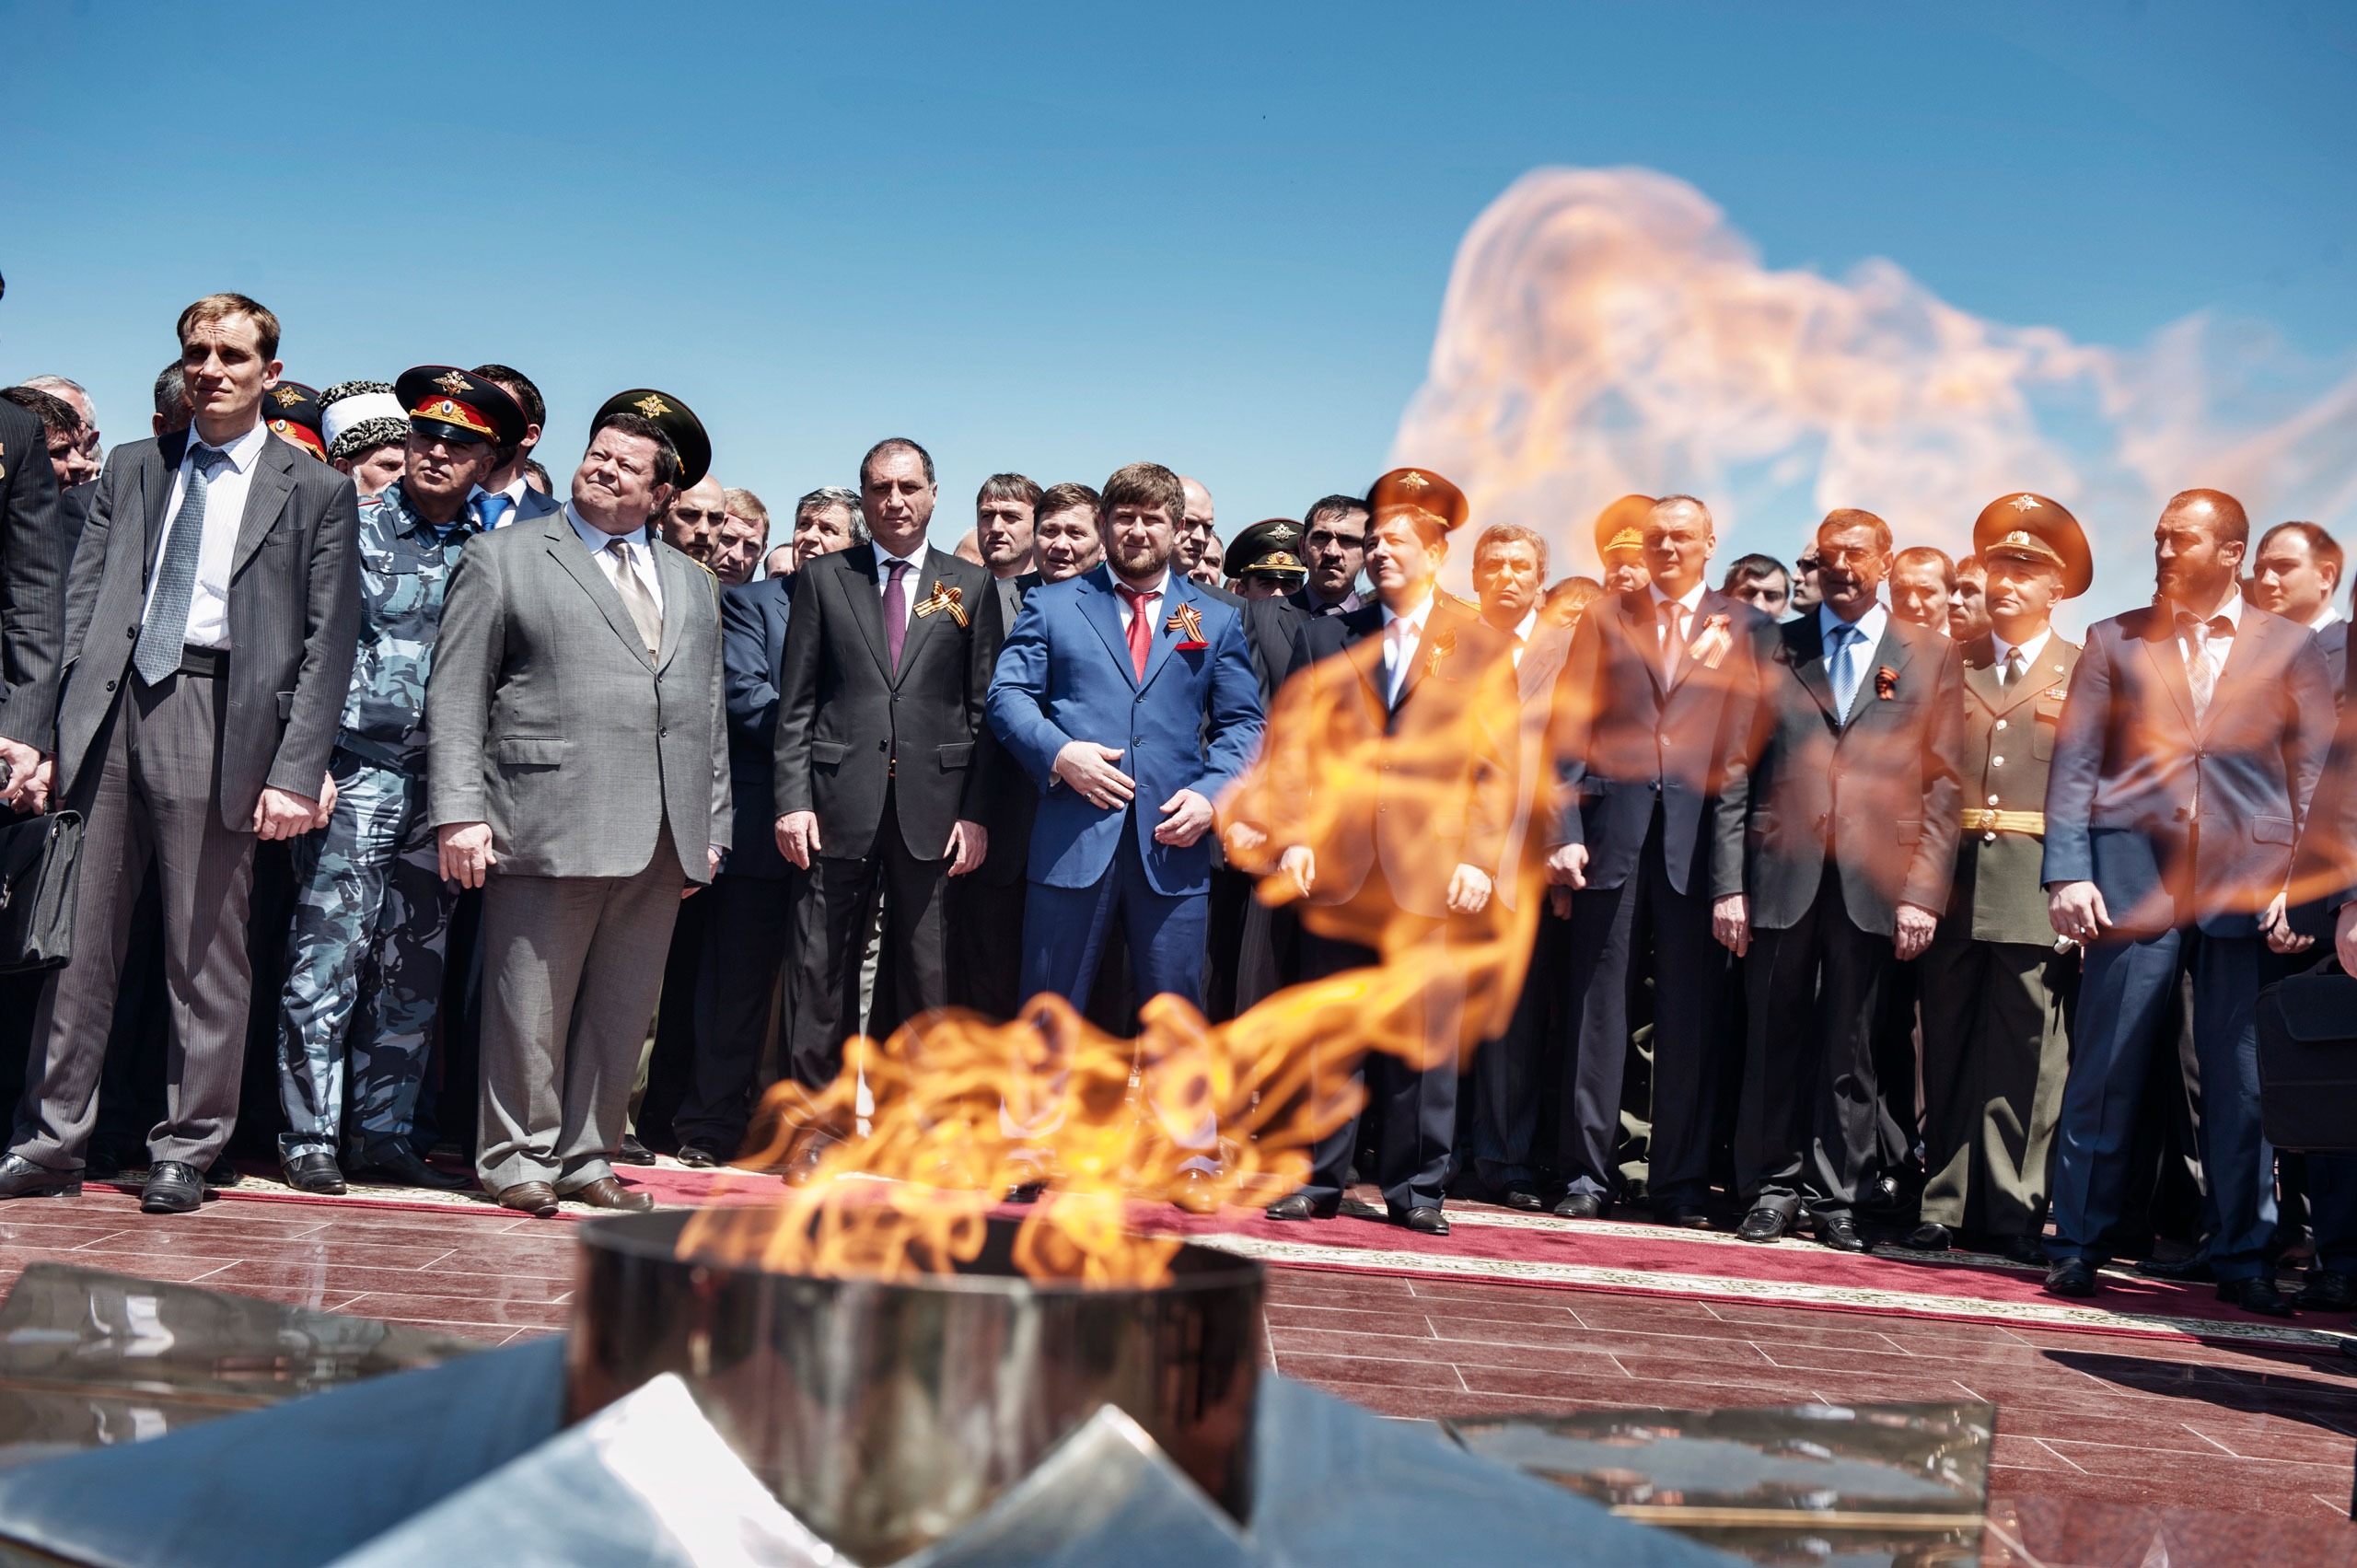 Chechen leader Ramzan Kadyrov, center, along with Russian and Chechen officials, attend a ceremony commemorating the Soviet victory in World War II, Grozny, Chechnya,  May 2010.